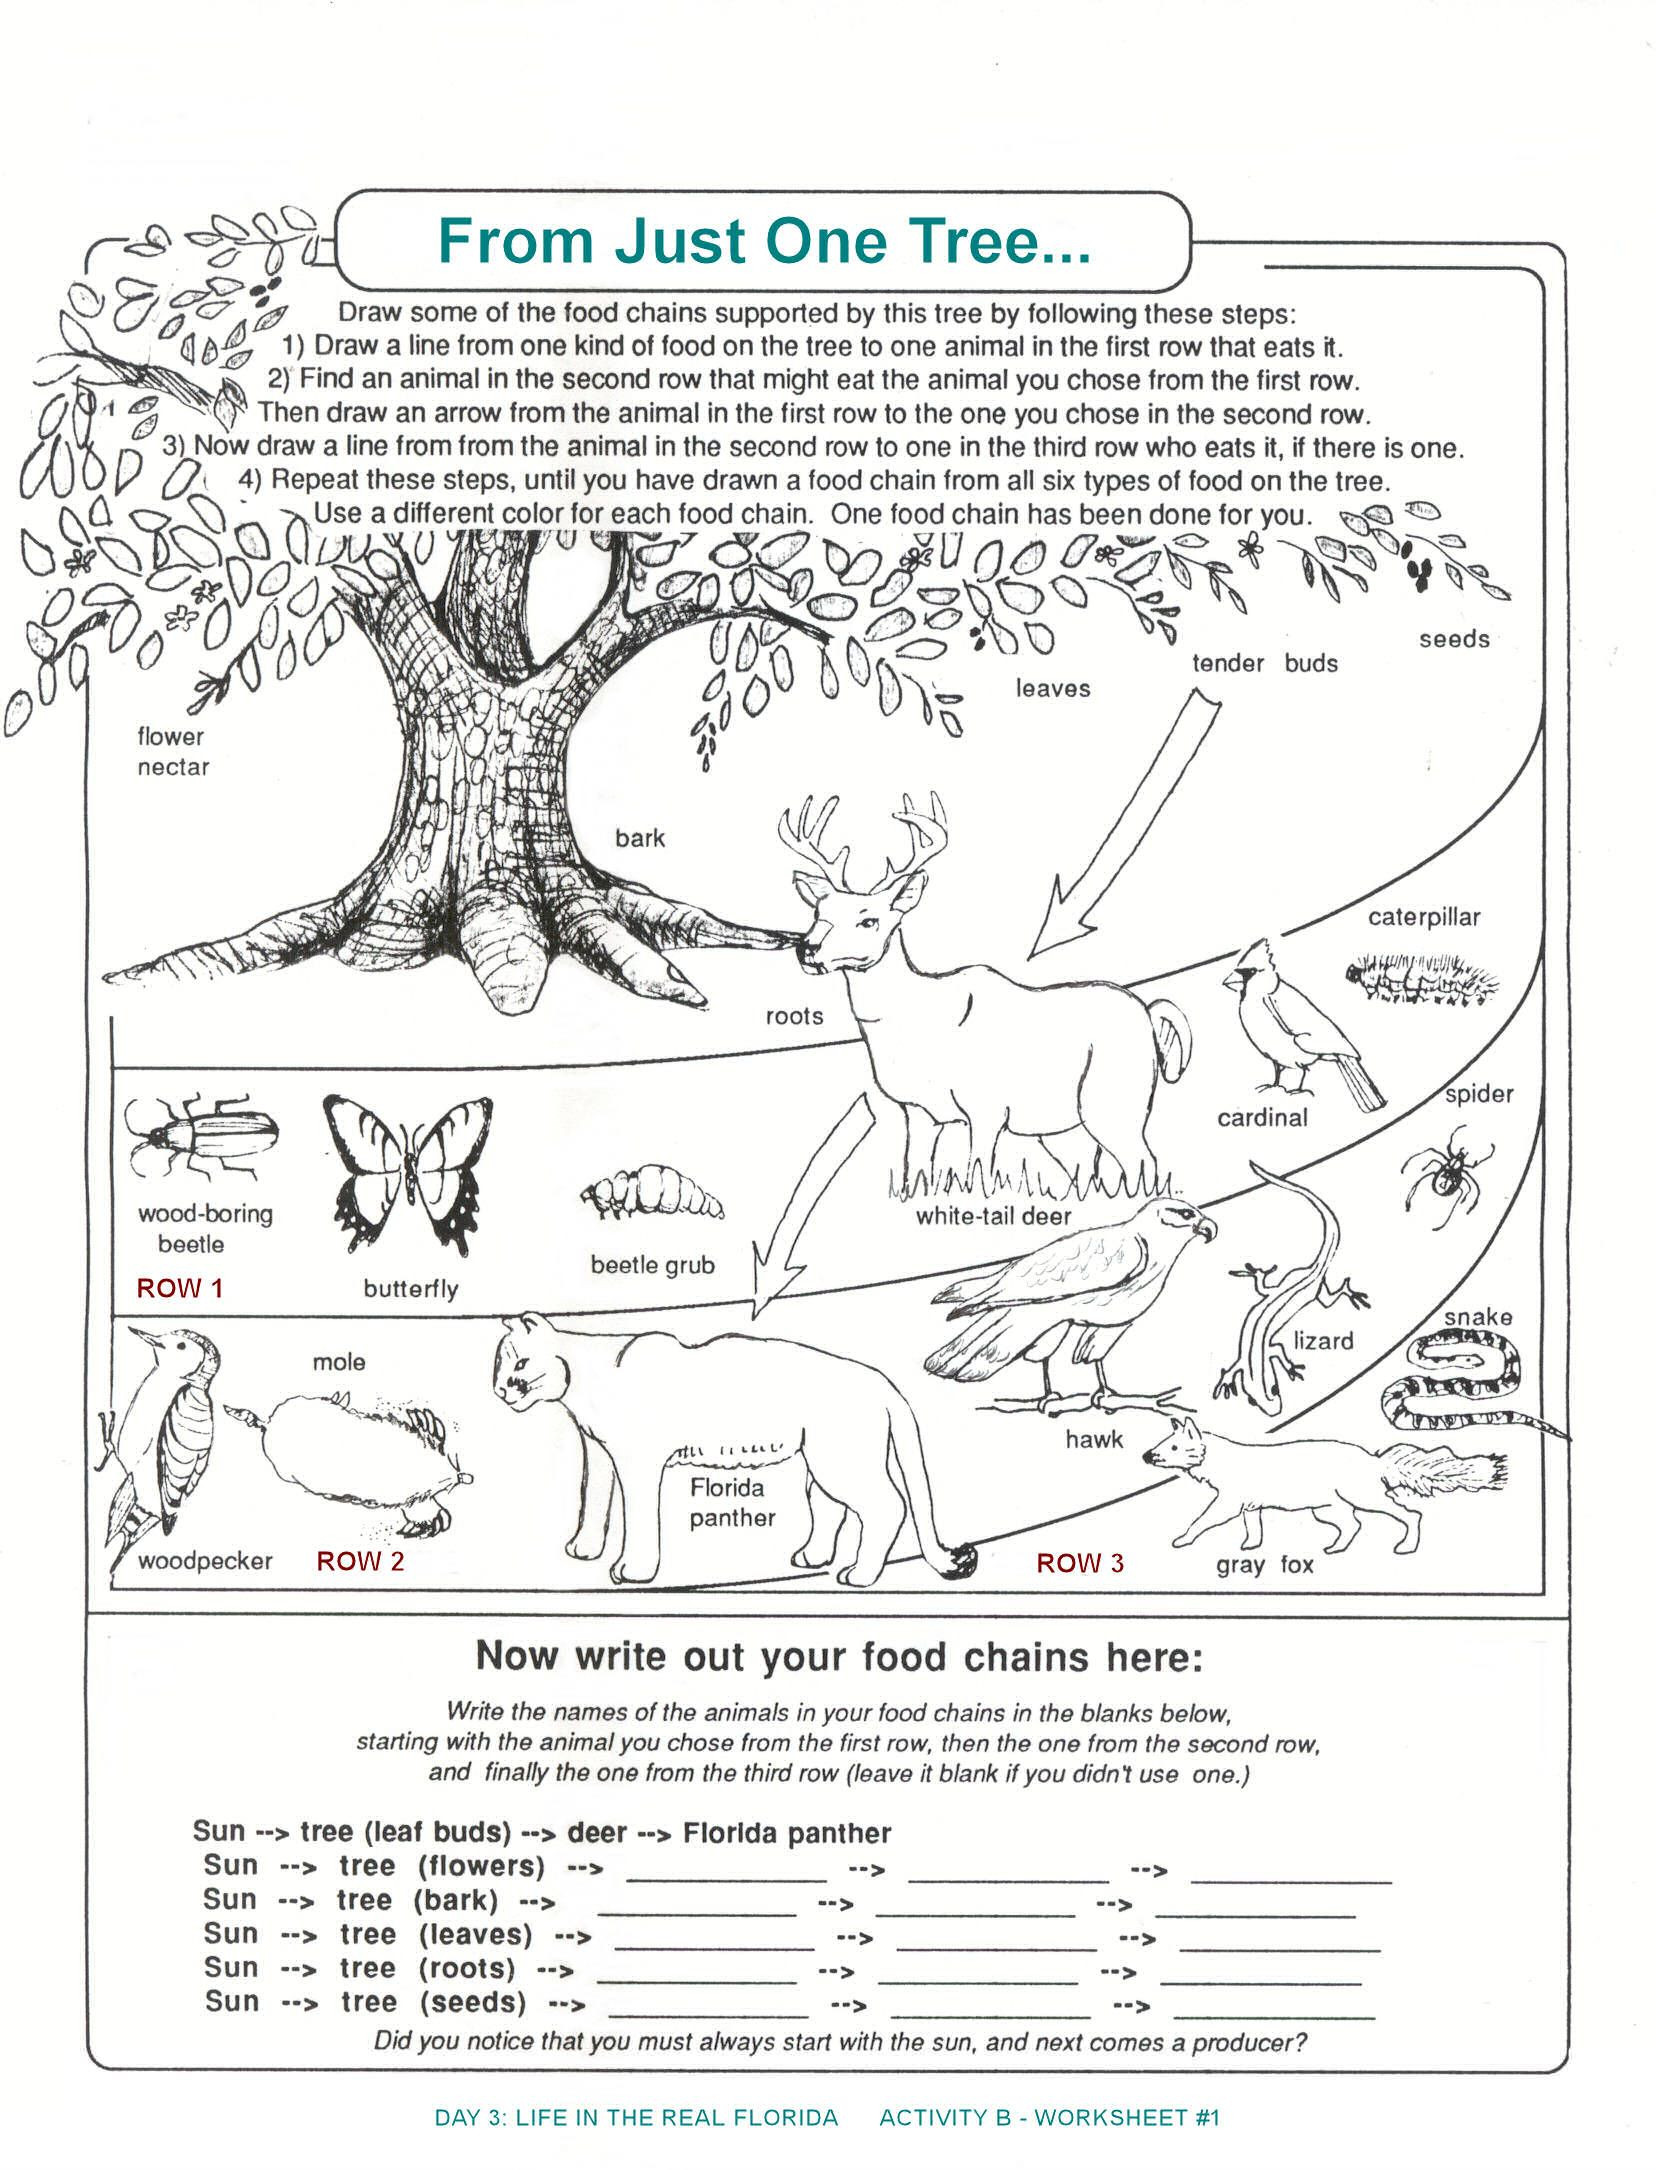 Ecosystem Worksheets 4th Grade Student Activity Sheet Food Web Yahoo Search Results